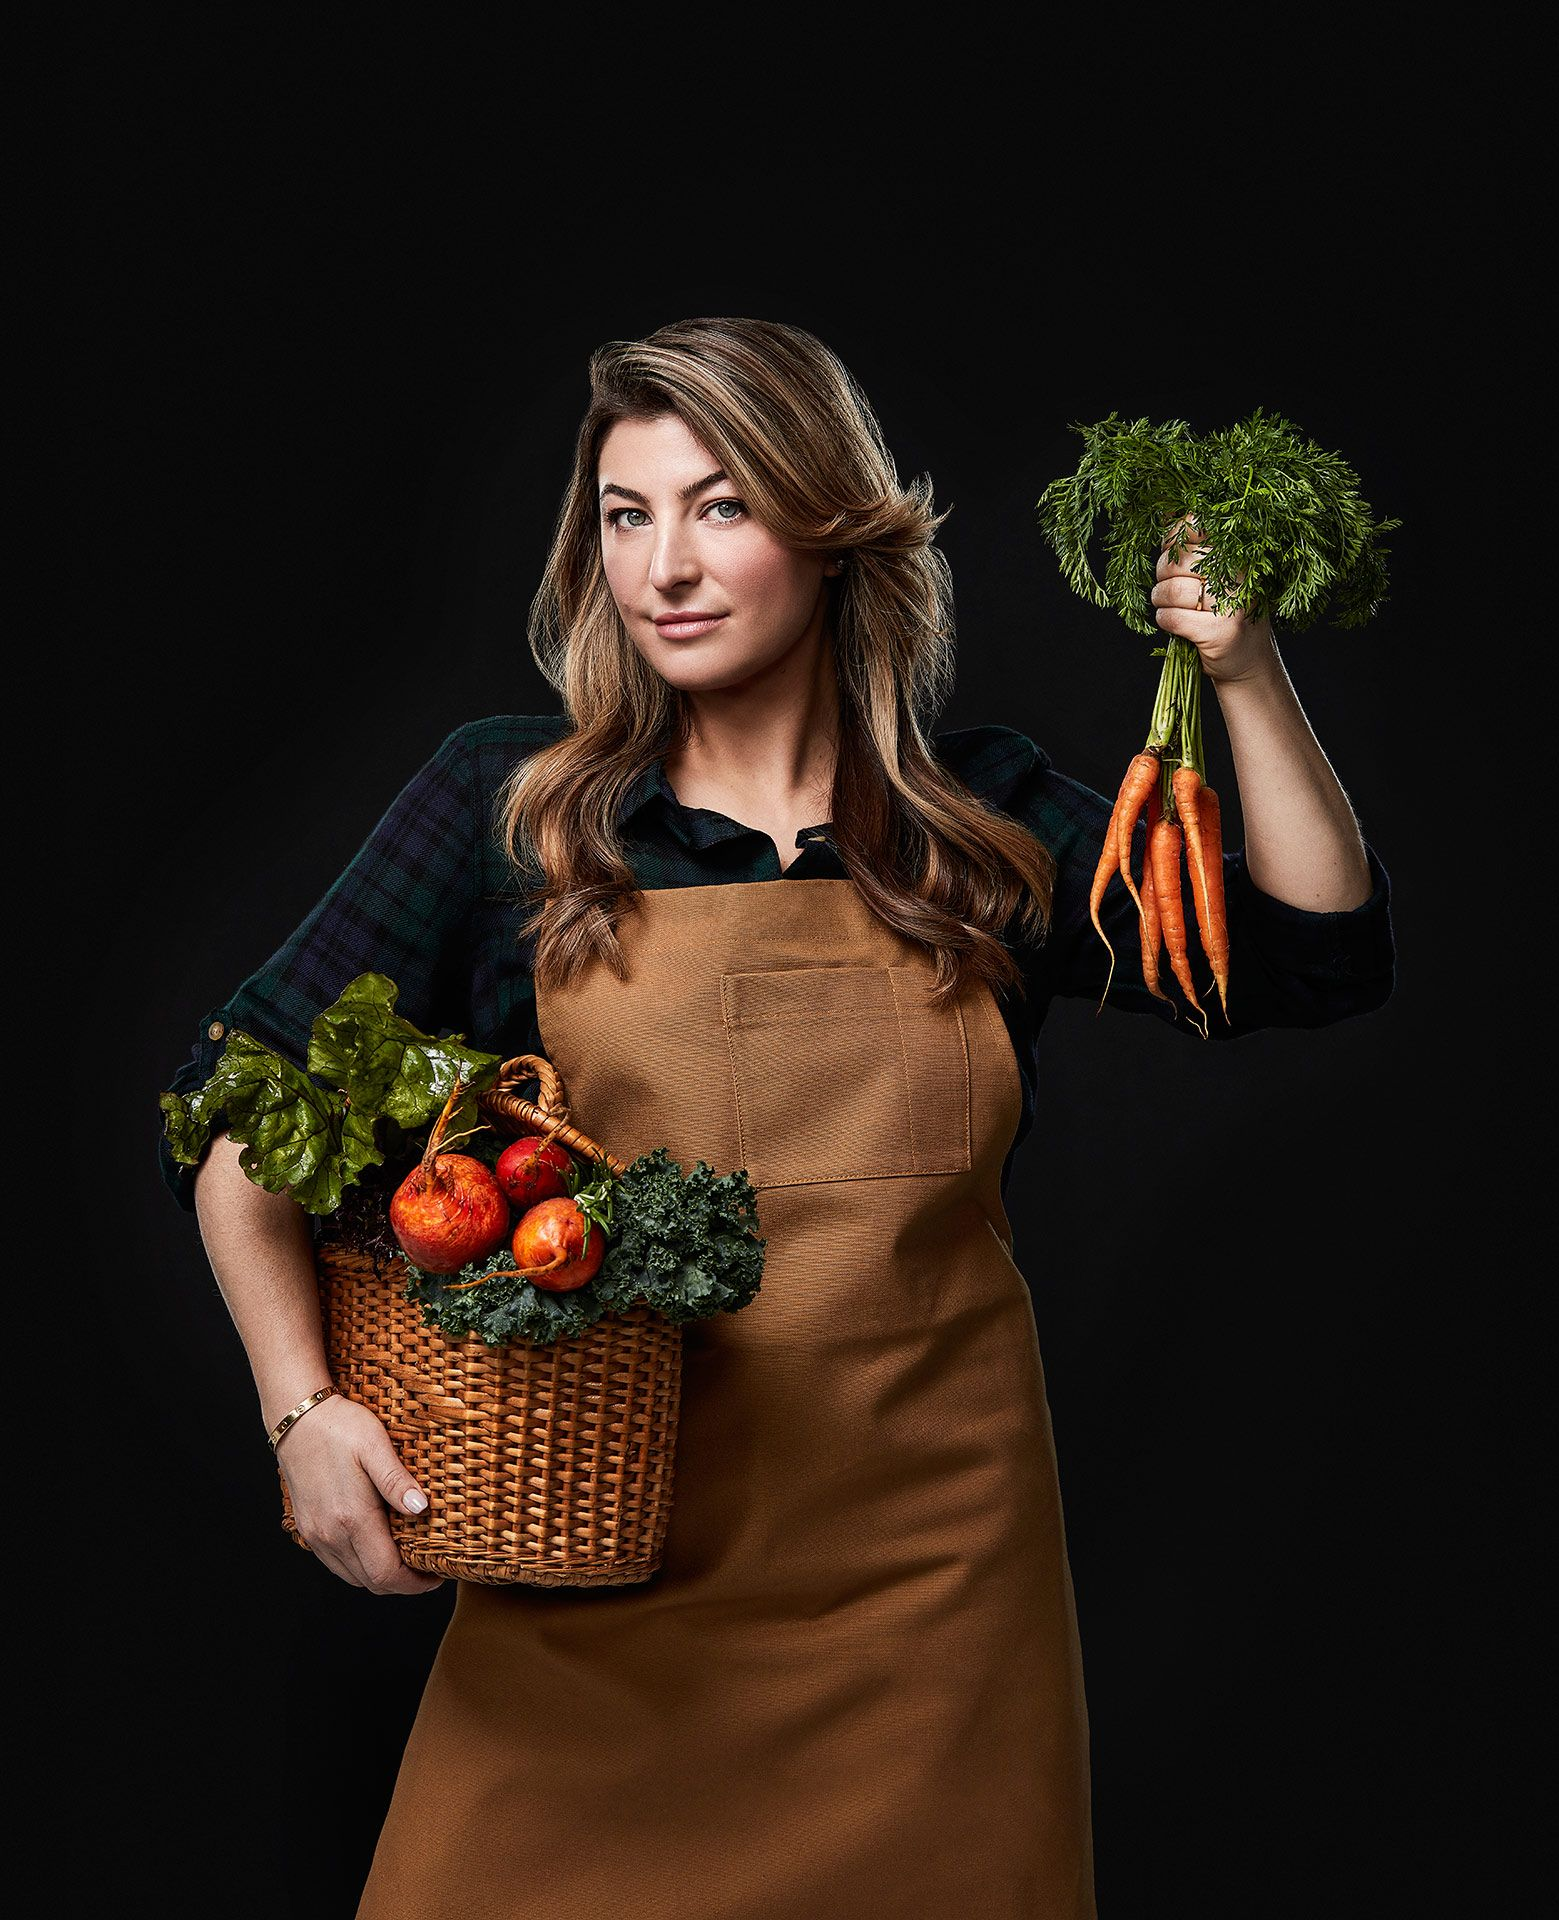 portrait of female chief Reagan Steinberg holding a wicker basket of greens under her arm and a bunch of carrots in the other hand by Jocelyn Michel for the Cathcart